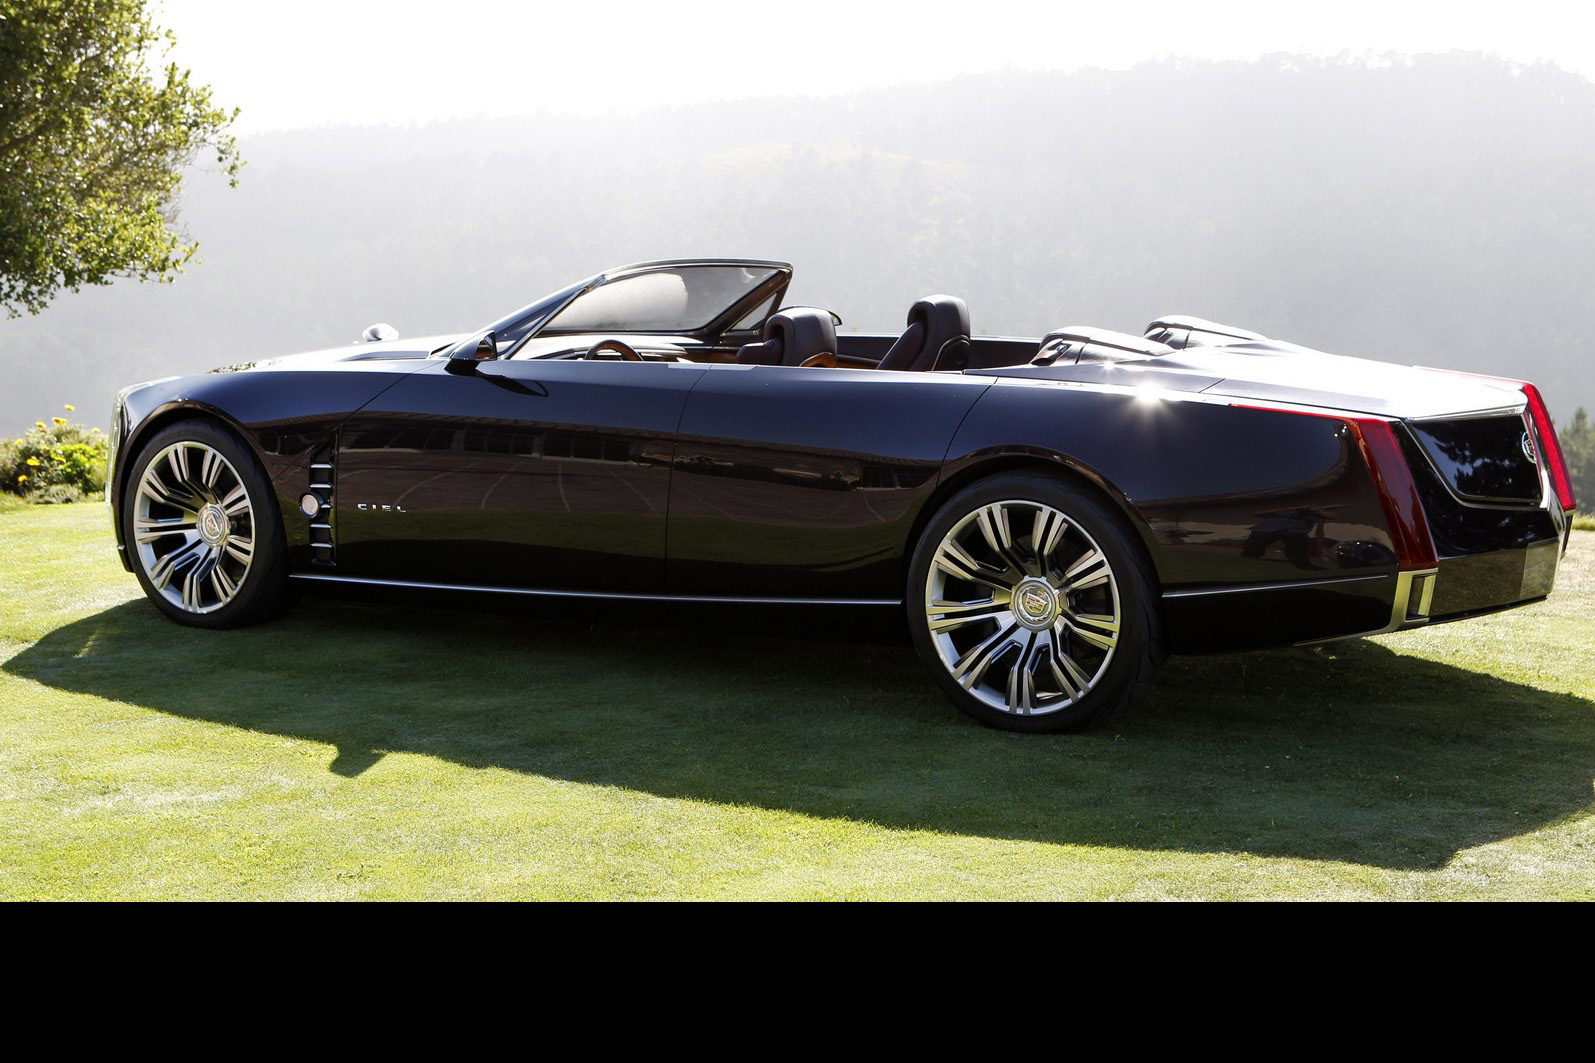 New Cadillac Ciel 4-door Convertible Concept Wows Pebble Beach Crowd